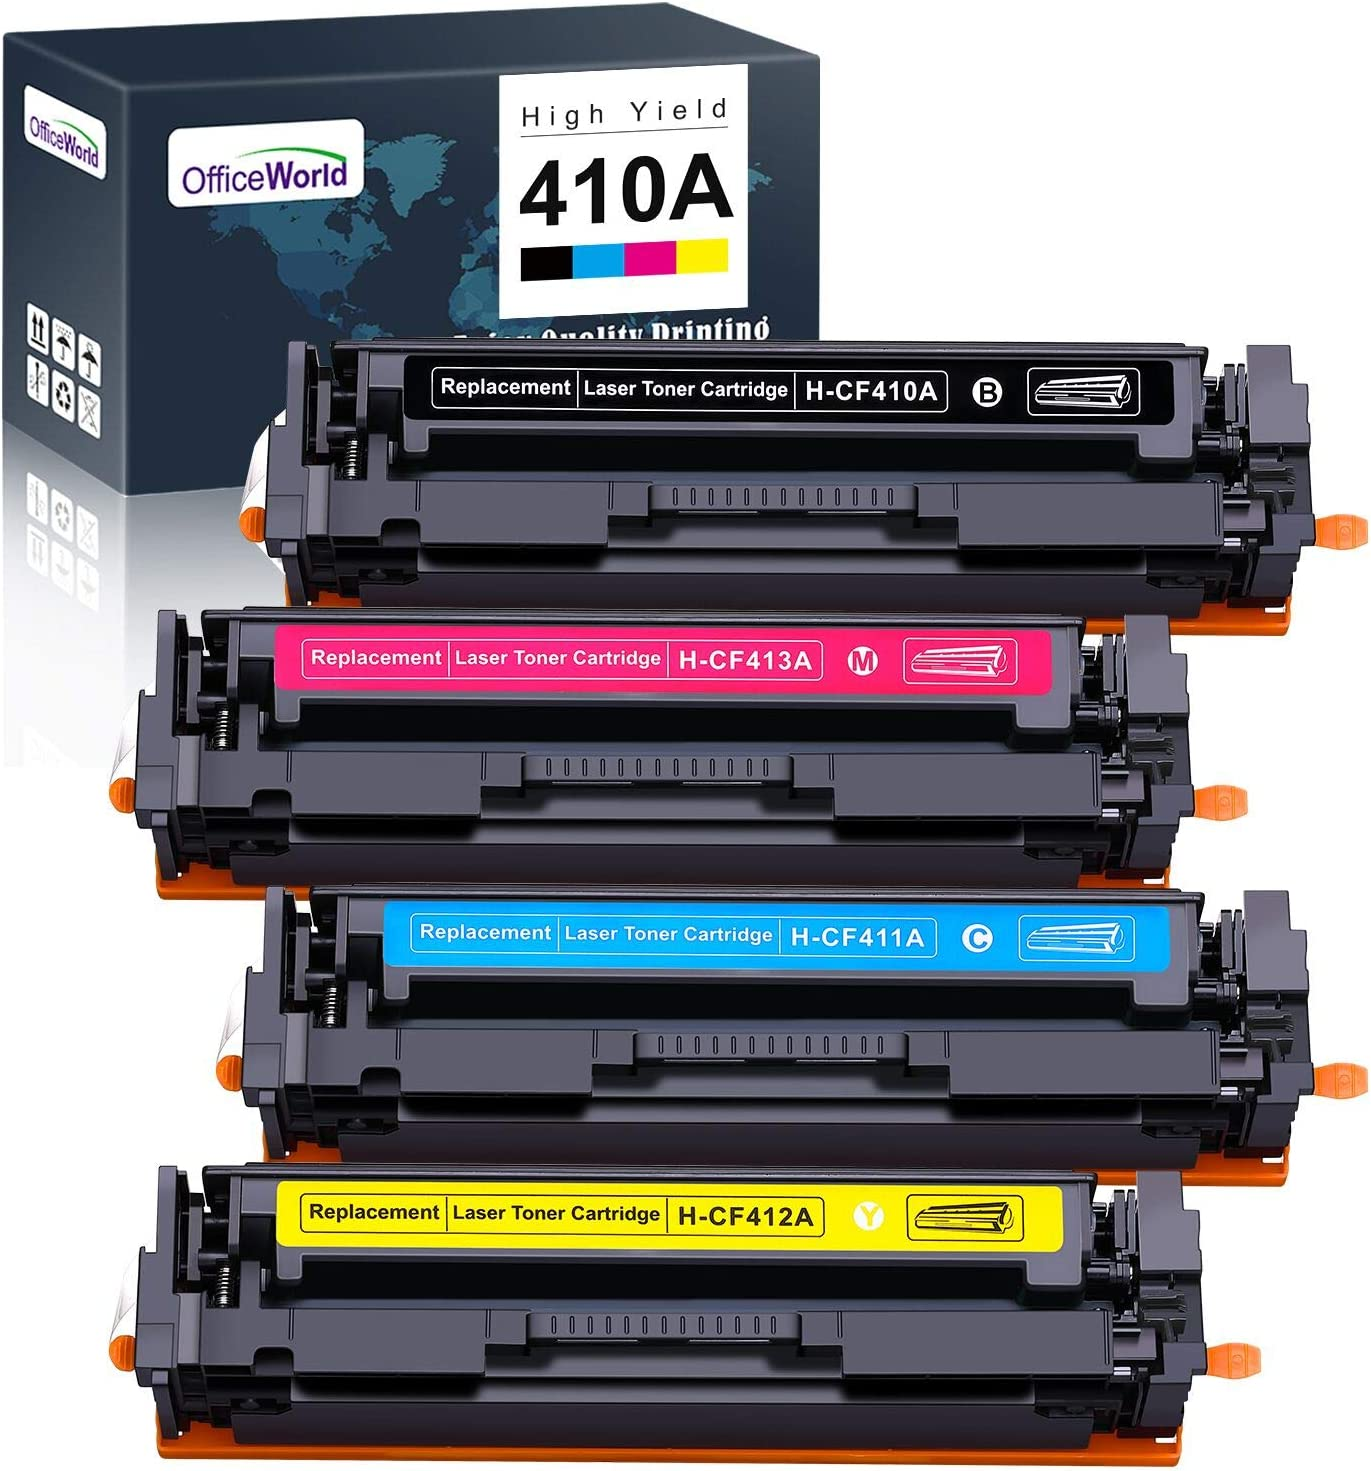 Office World Compatible Toner Cartridge Replacement for HP 410A CF410A CF411A CF412A CF413A Toner Cartridge (Black, Magenta, Yellow, Cyan) 4 Packs, Work with HP M477fnw M477fdn M477fdw M377dw M452dn